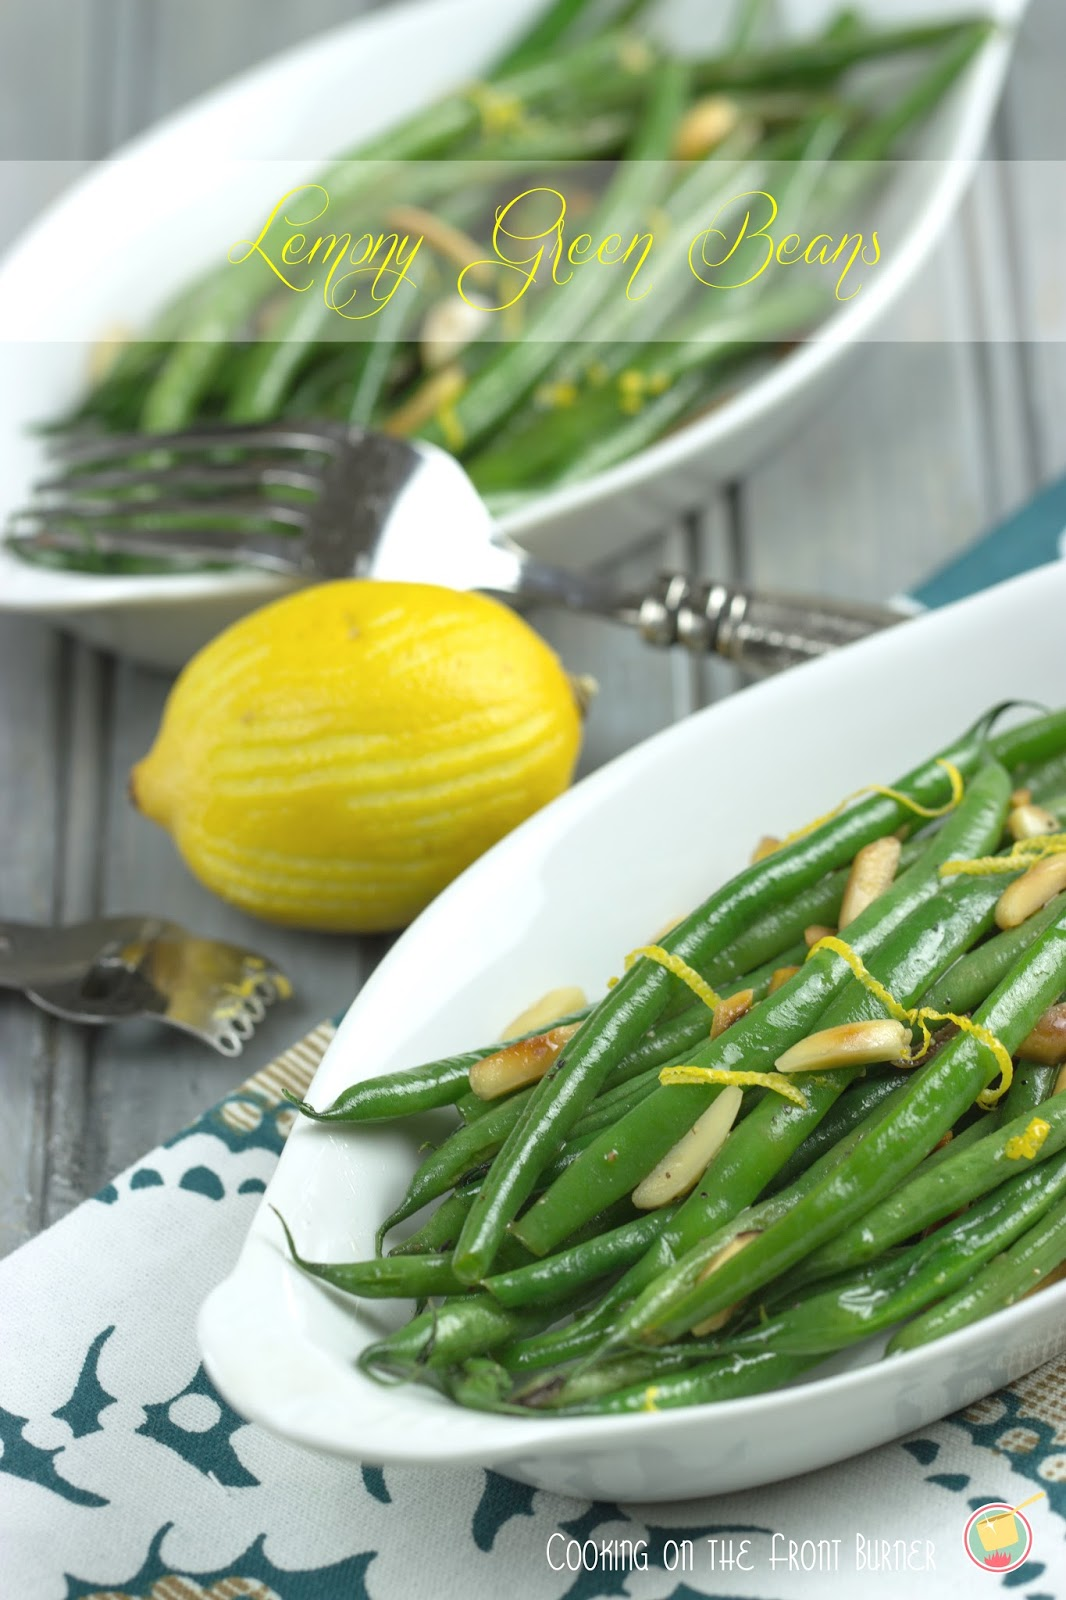 Lemony Green Beans | Cooking on the Front Burner #greenbeans #lemon